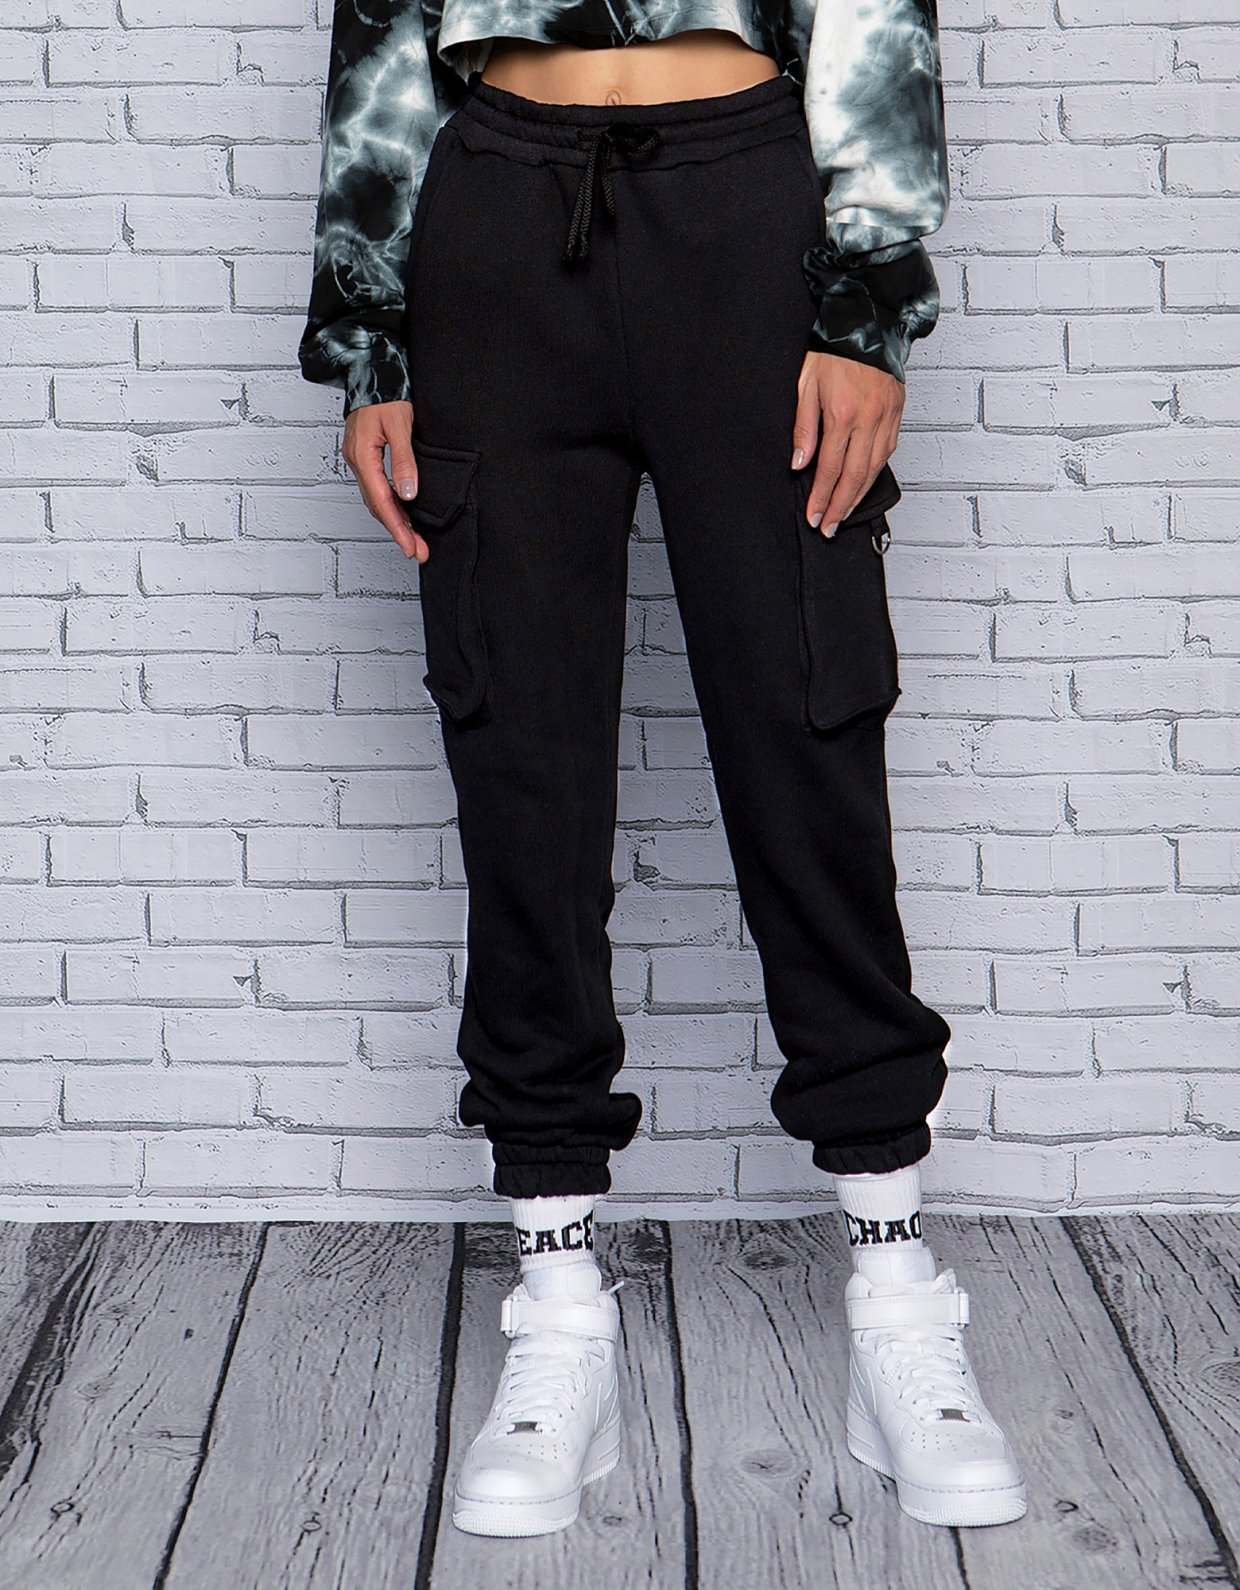 Peace & Chaos Tomboy sweatpants